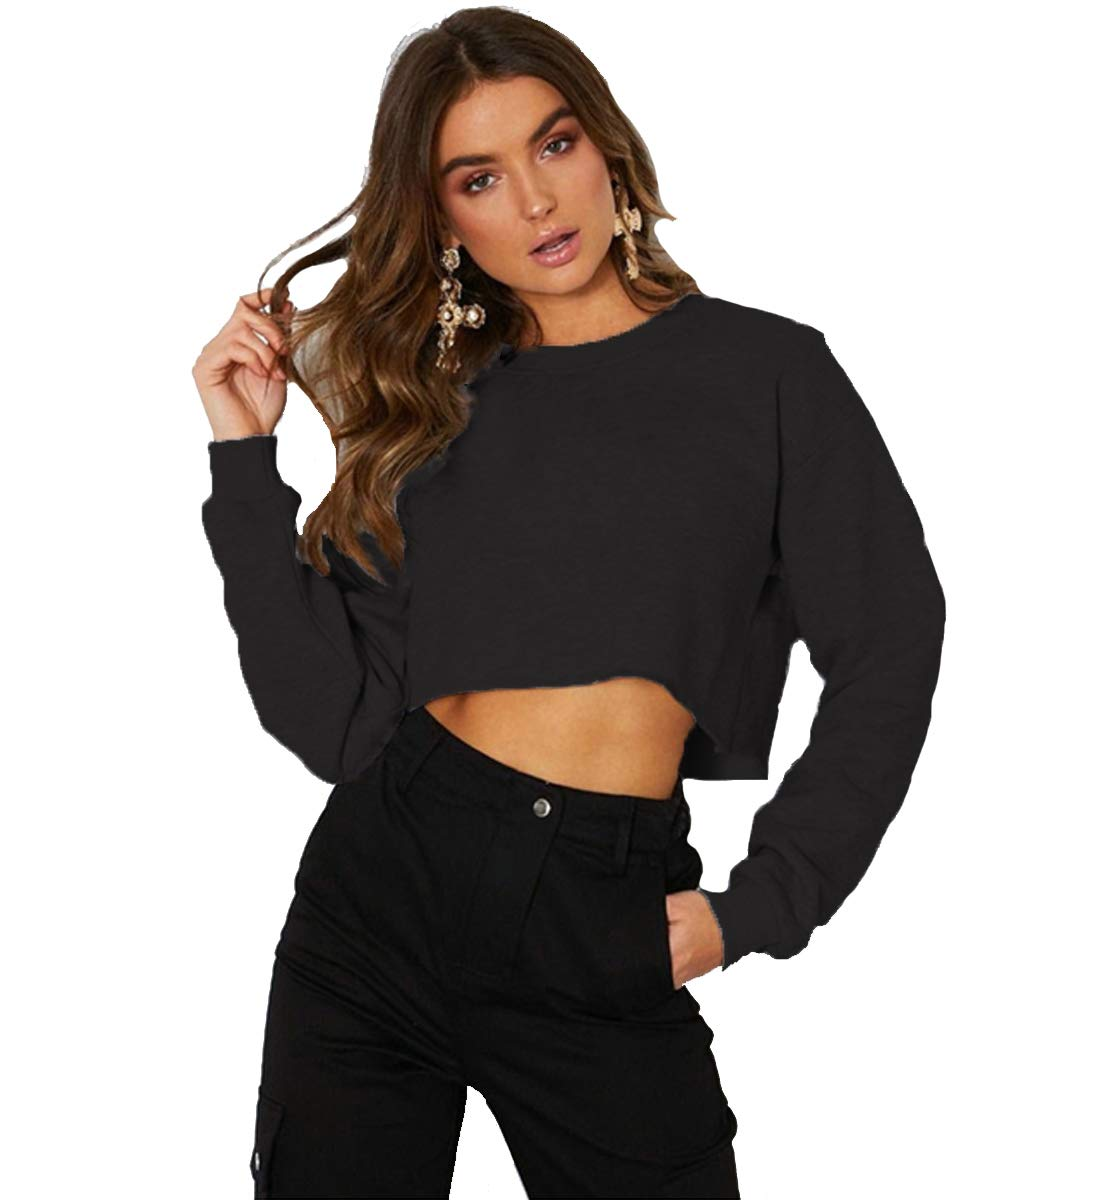 Kyerivs Crop Sweatshirt for Women Crewneck Long Sleeve Workout Tops